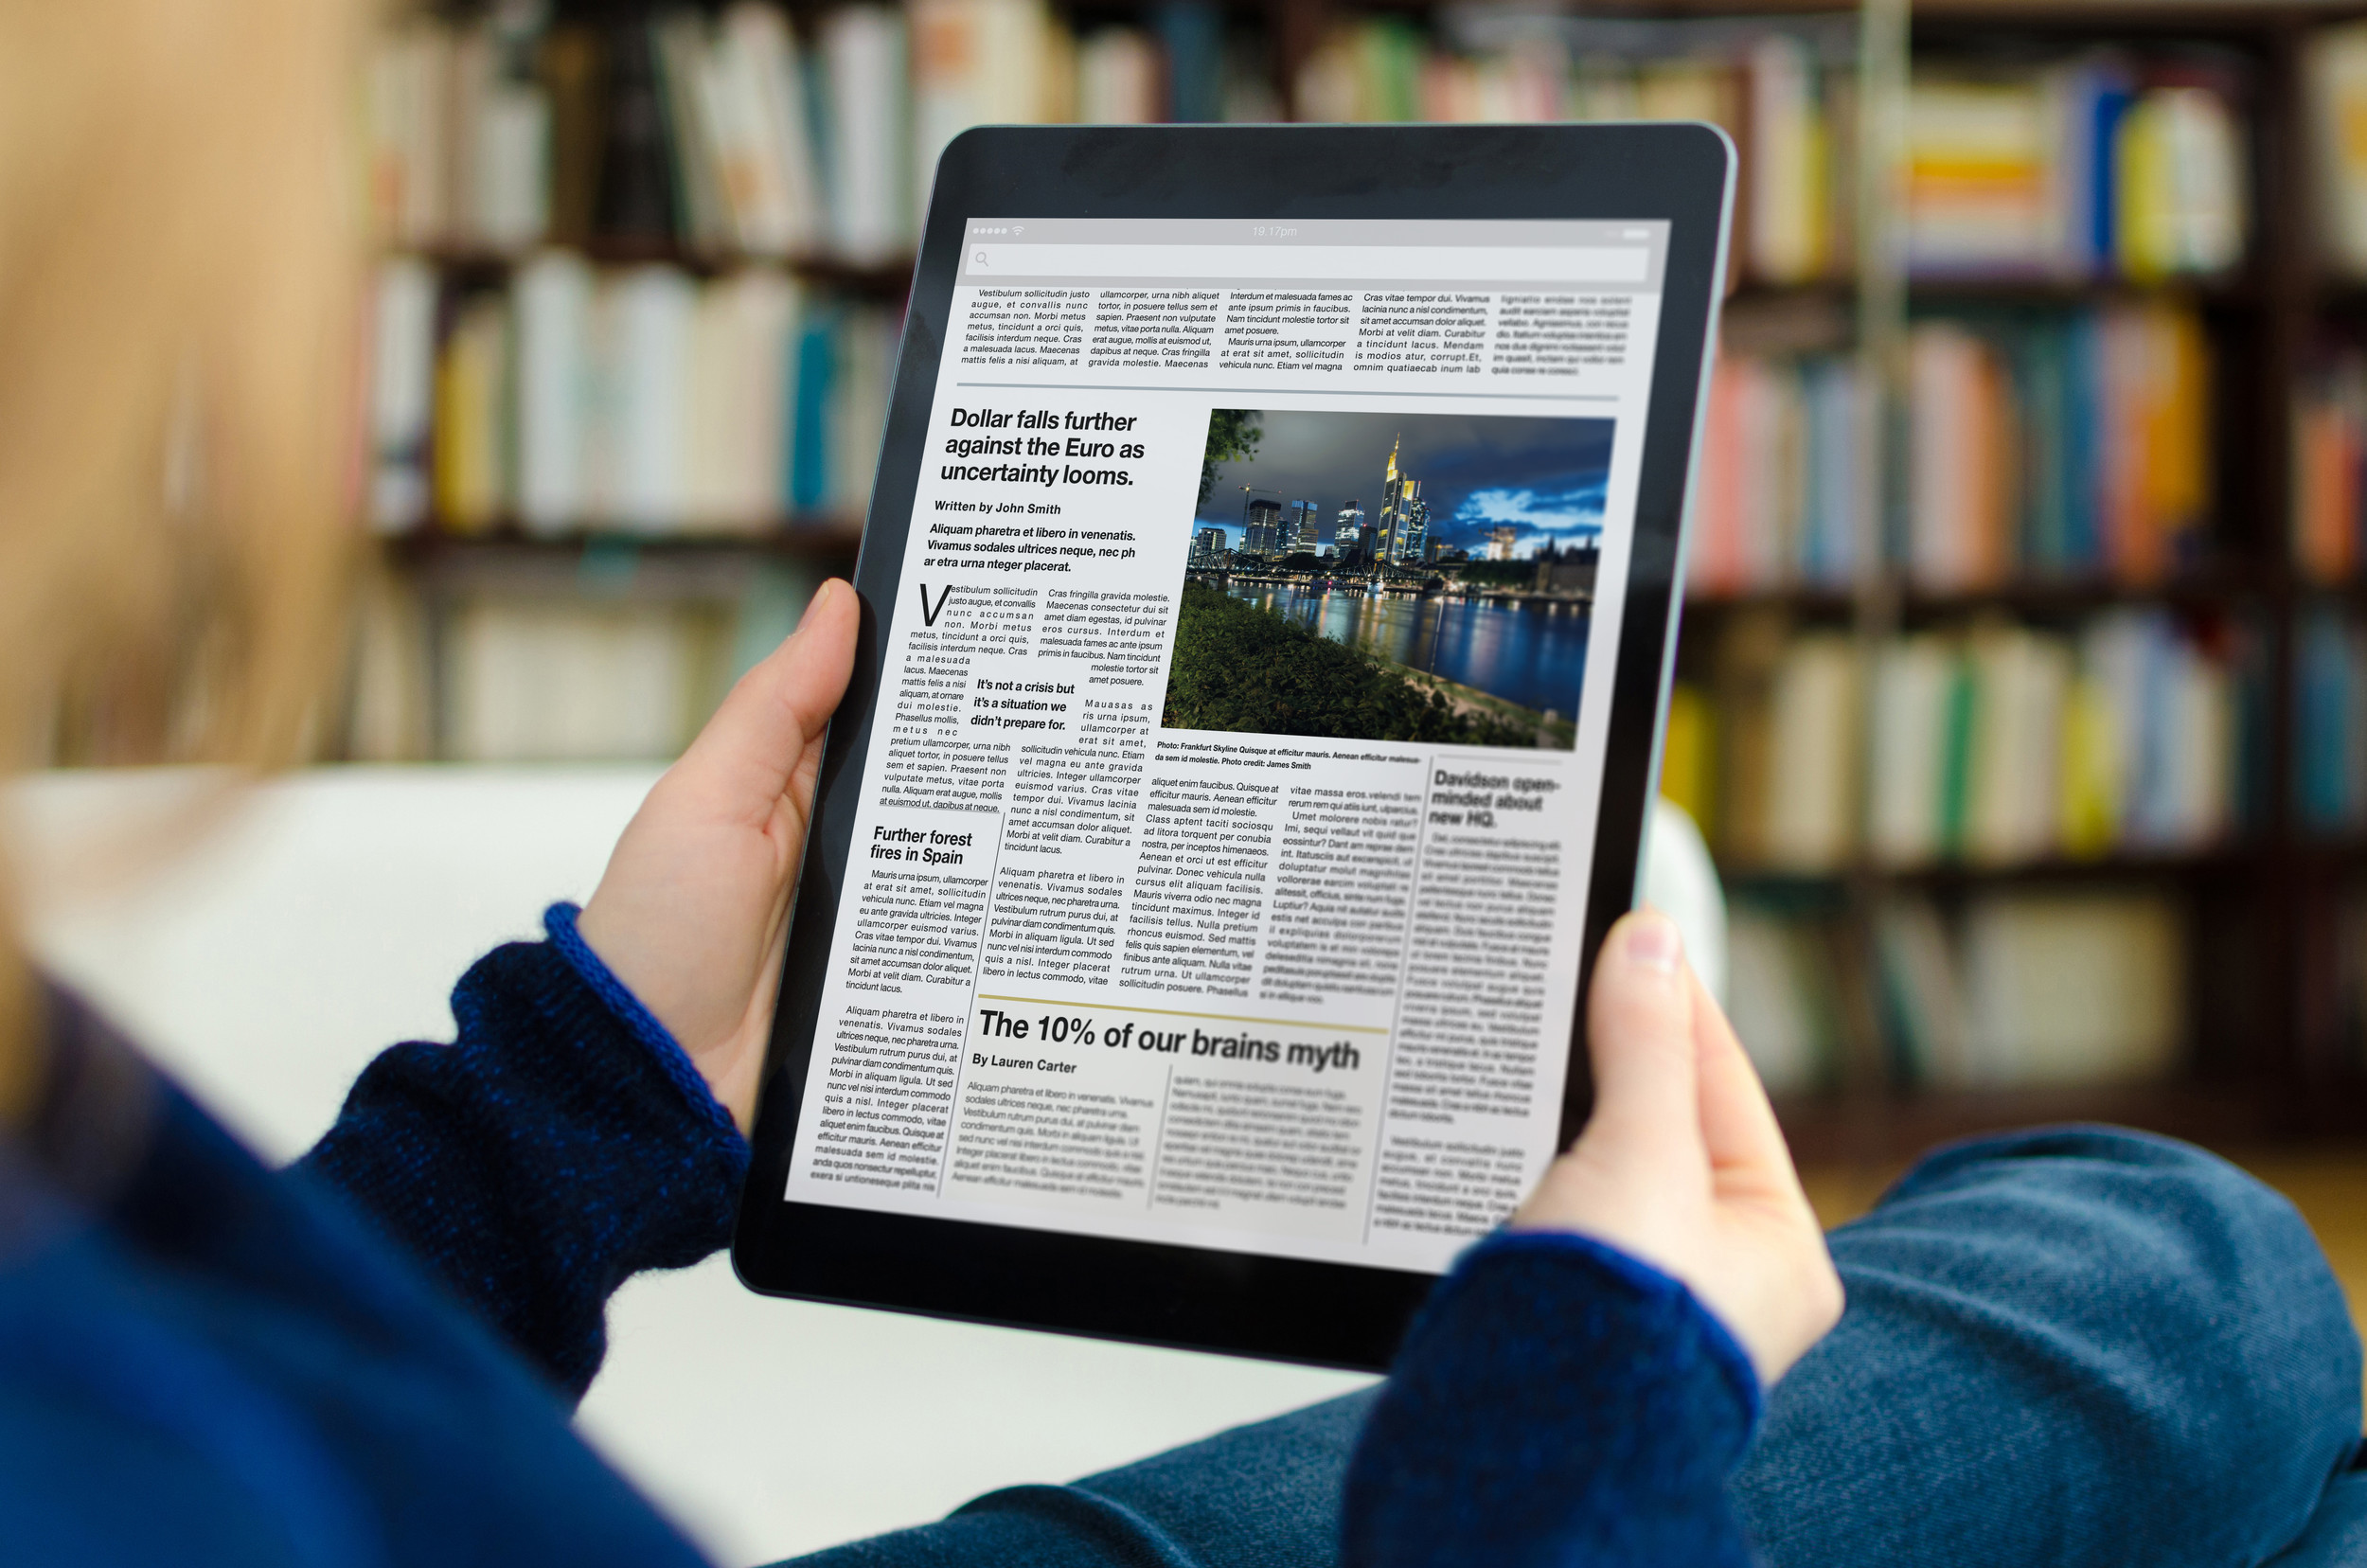 5 ways to get your brand mentioned in A-class publications